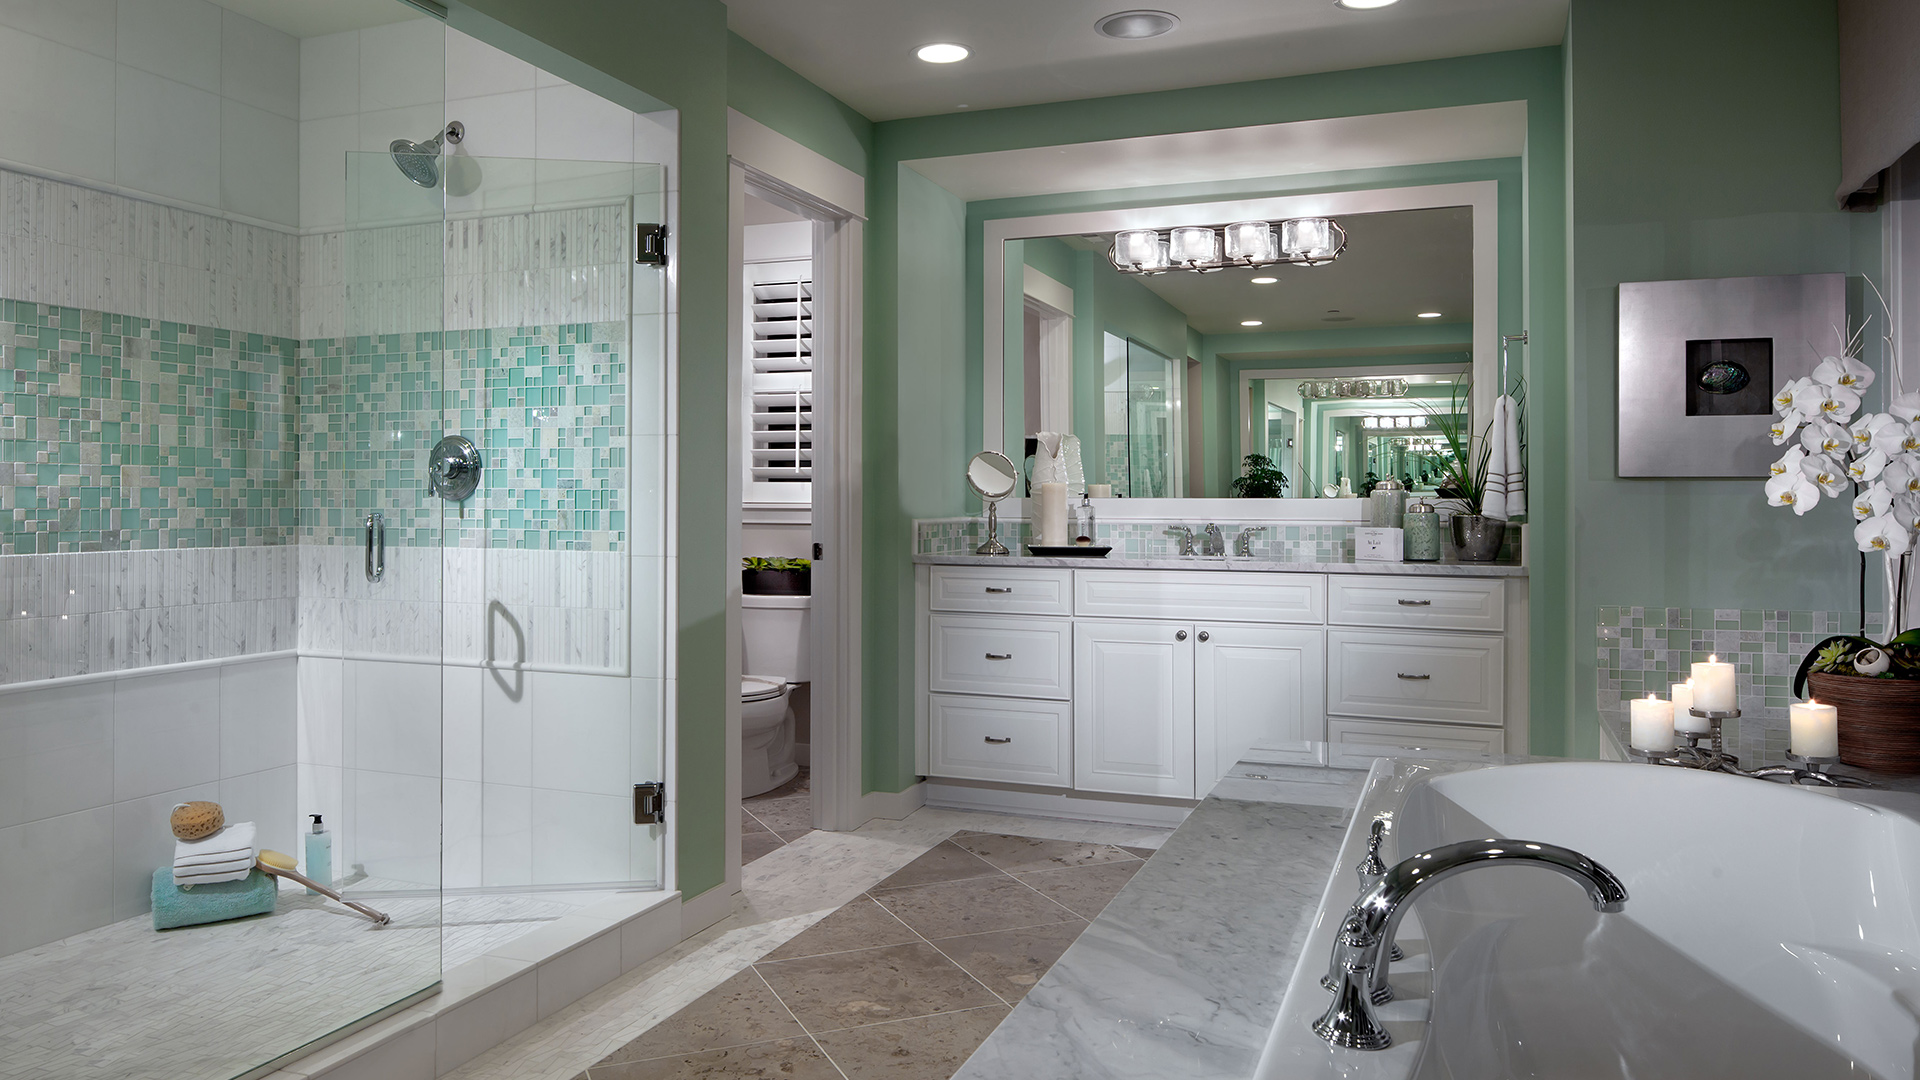 Bothell wa new homes for sale pipers glen for Bathroom remodel yakima